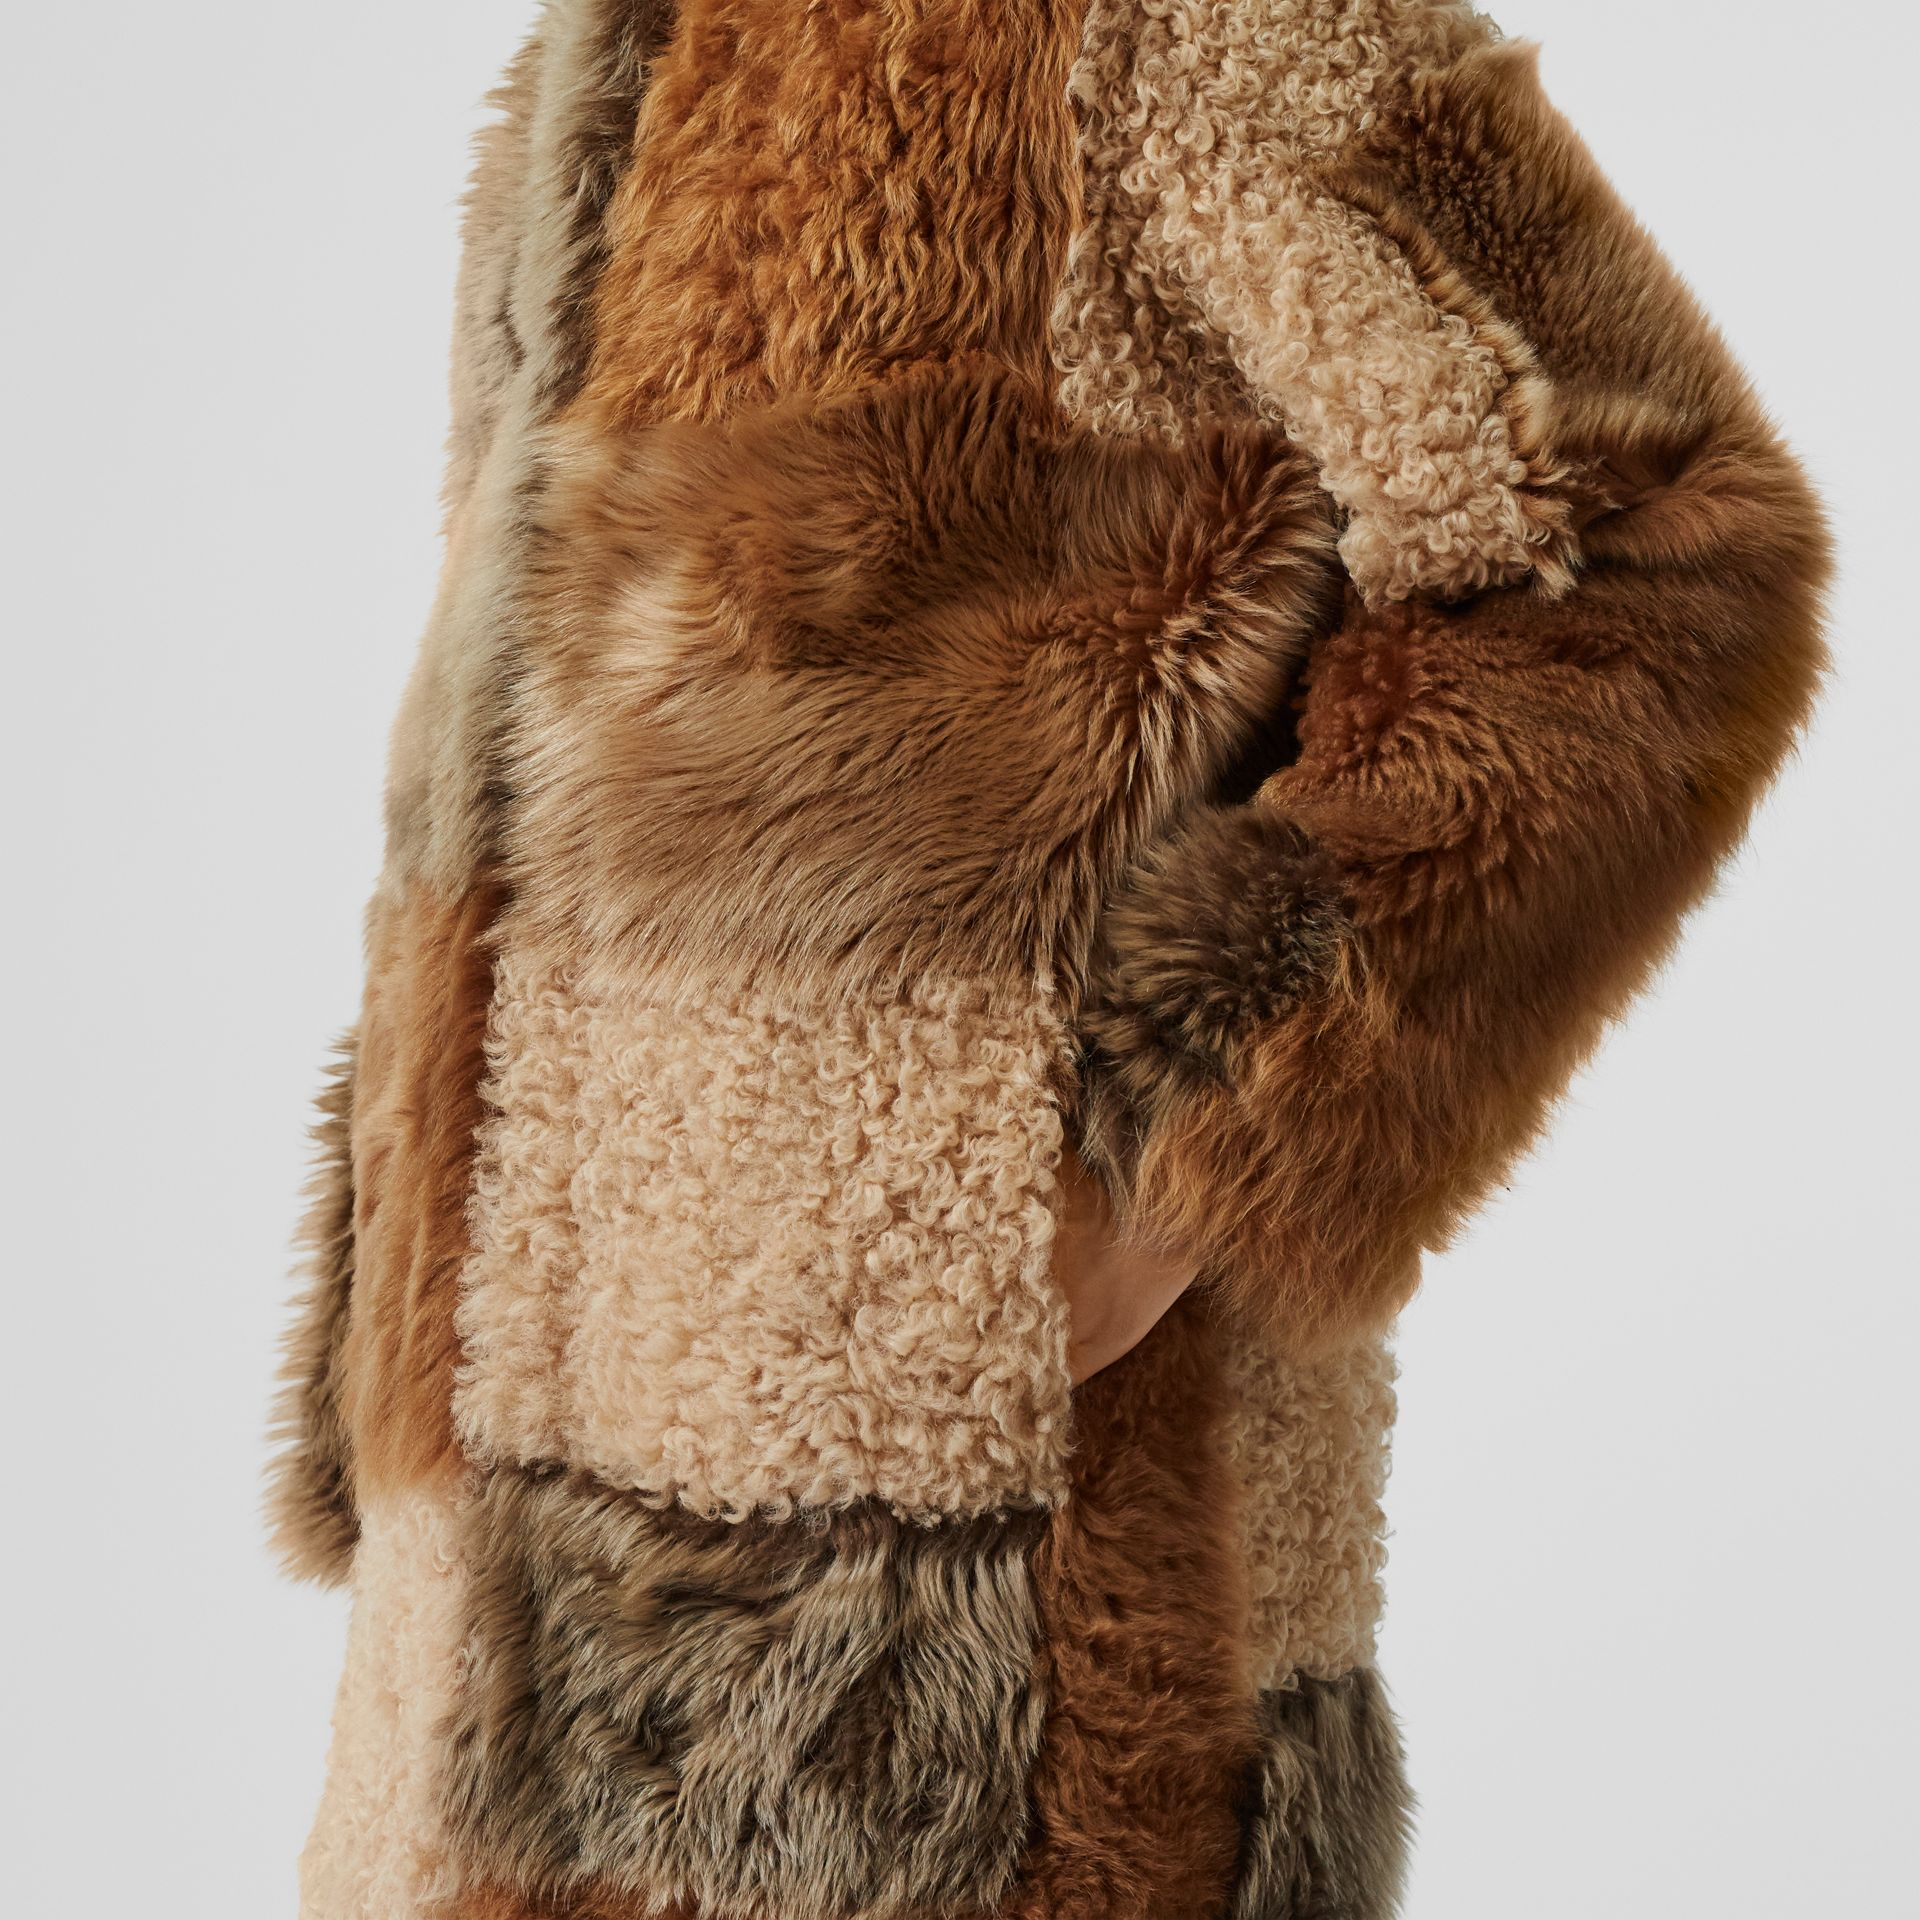 Patchwork Shearling Coat in Toffee - Women | Burberry - gallery image 5